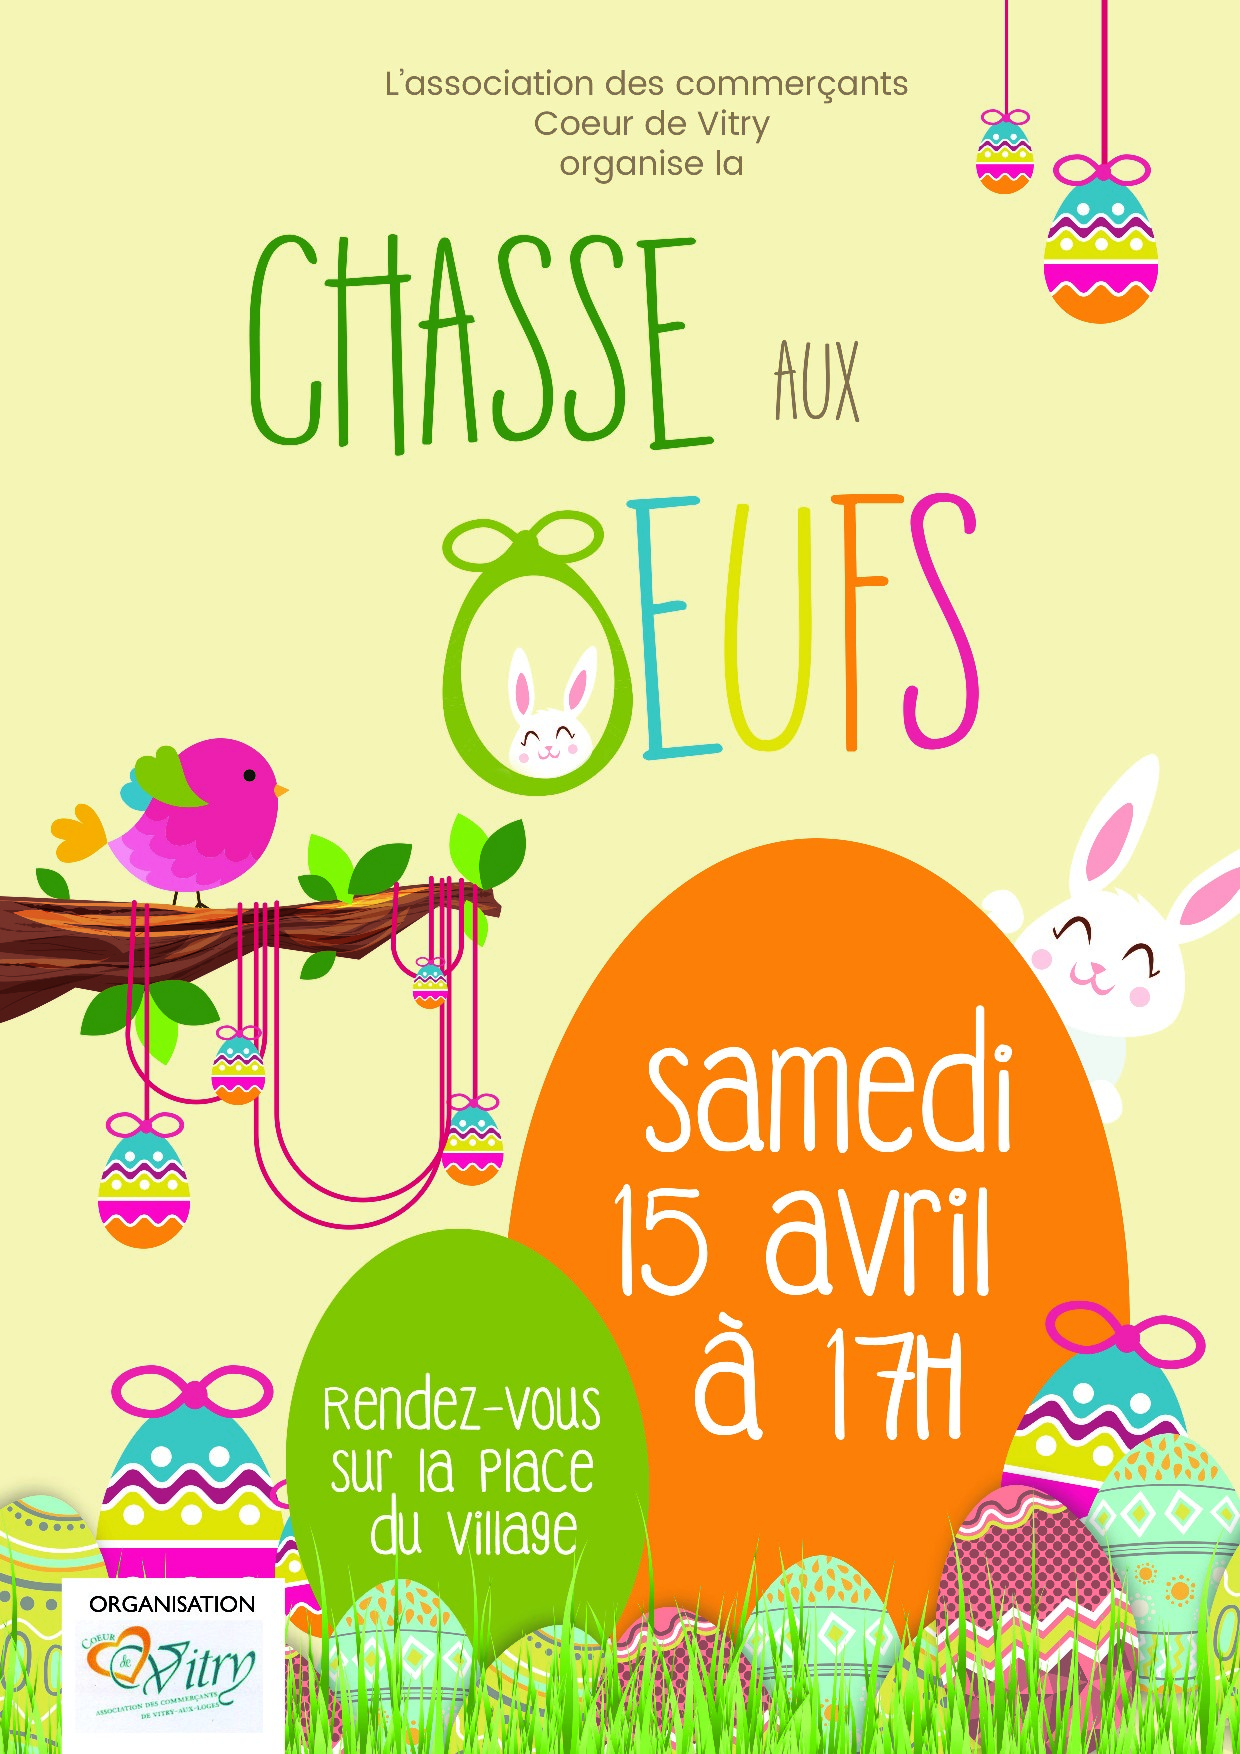 chasse-oeufs-paques-2017